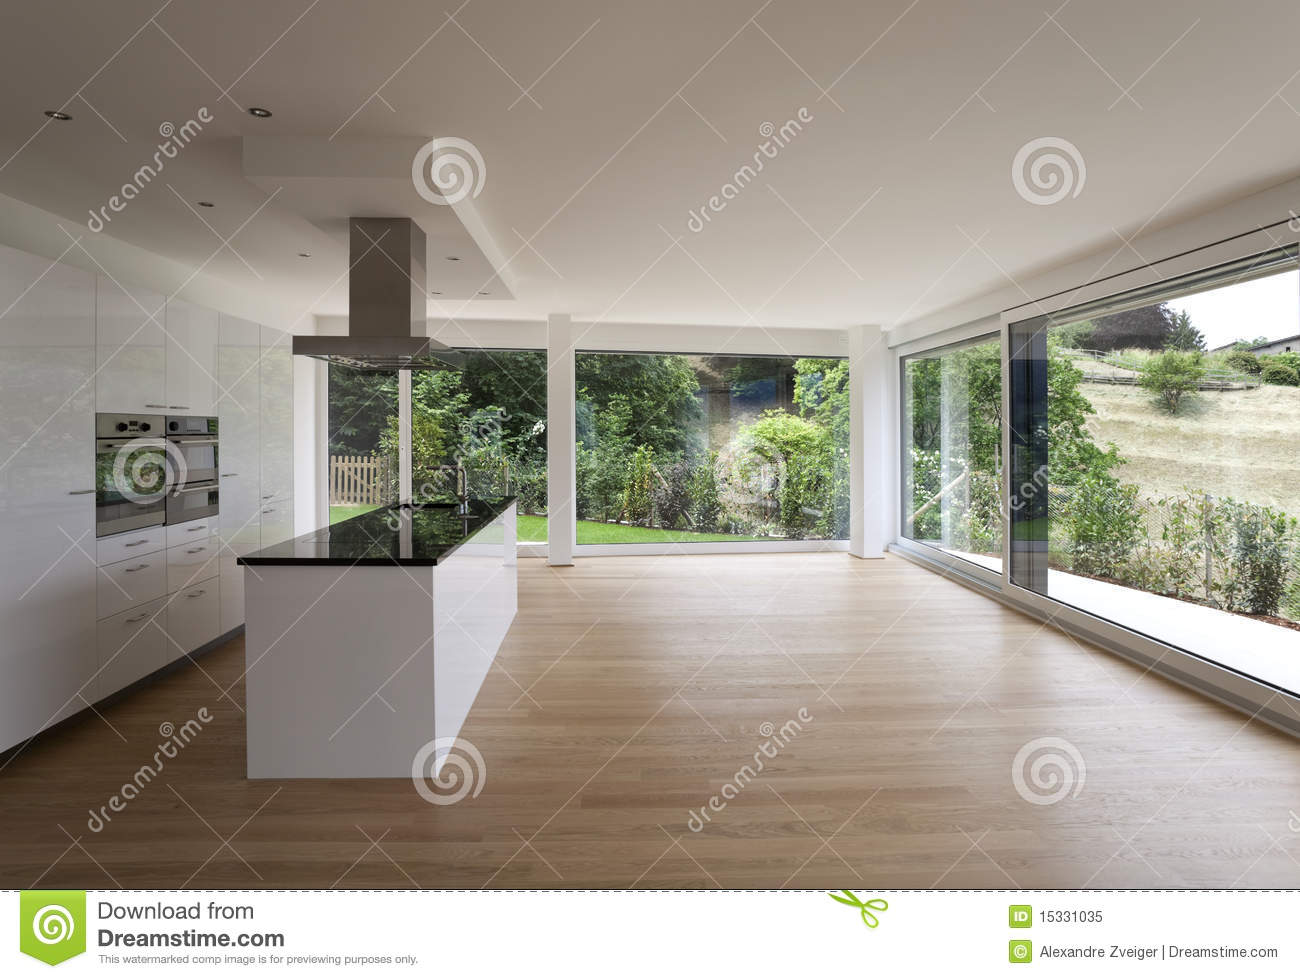 Bel int rieur d 39 une maison moderne photo libre de droits for Maison decoration interieur moderne villas